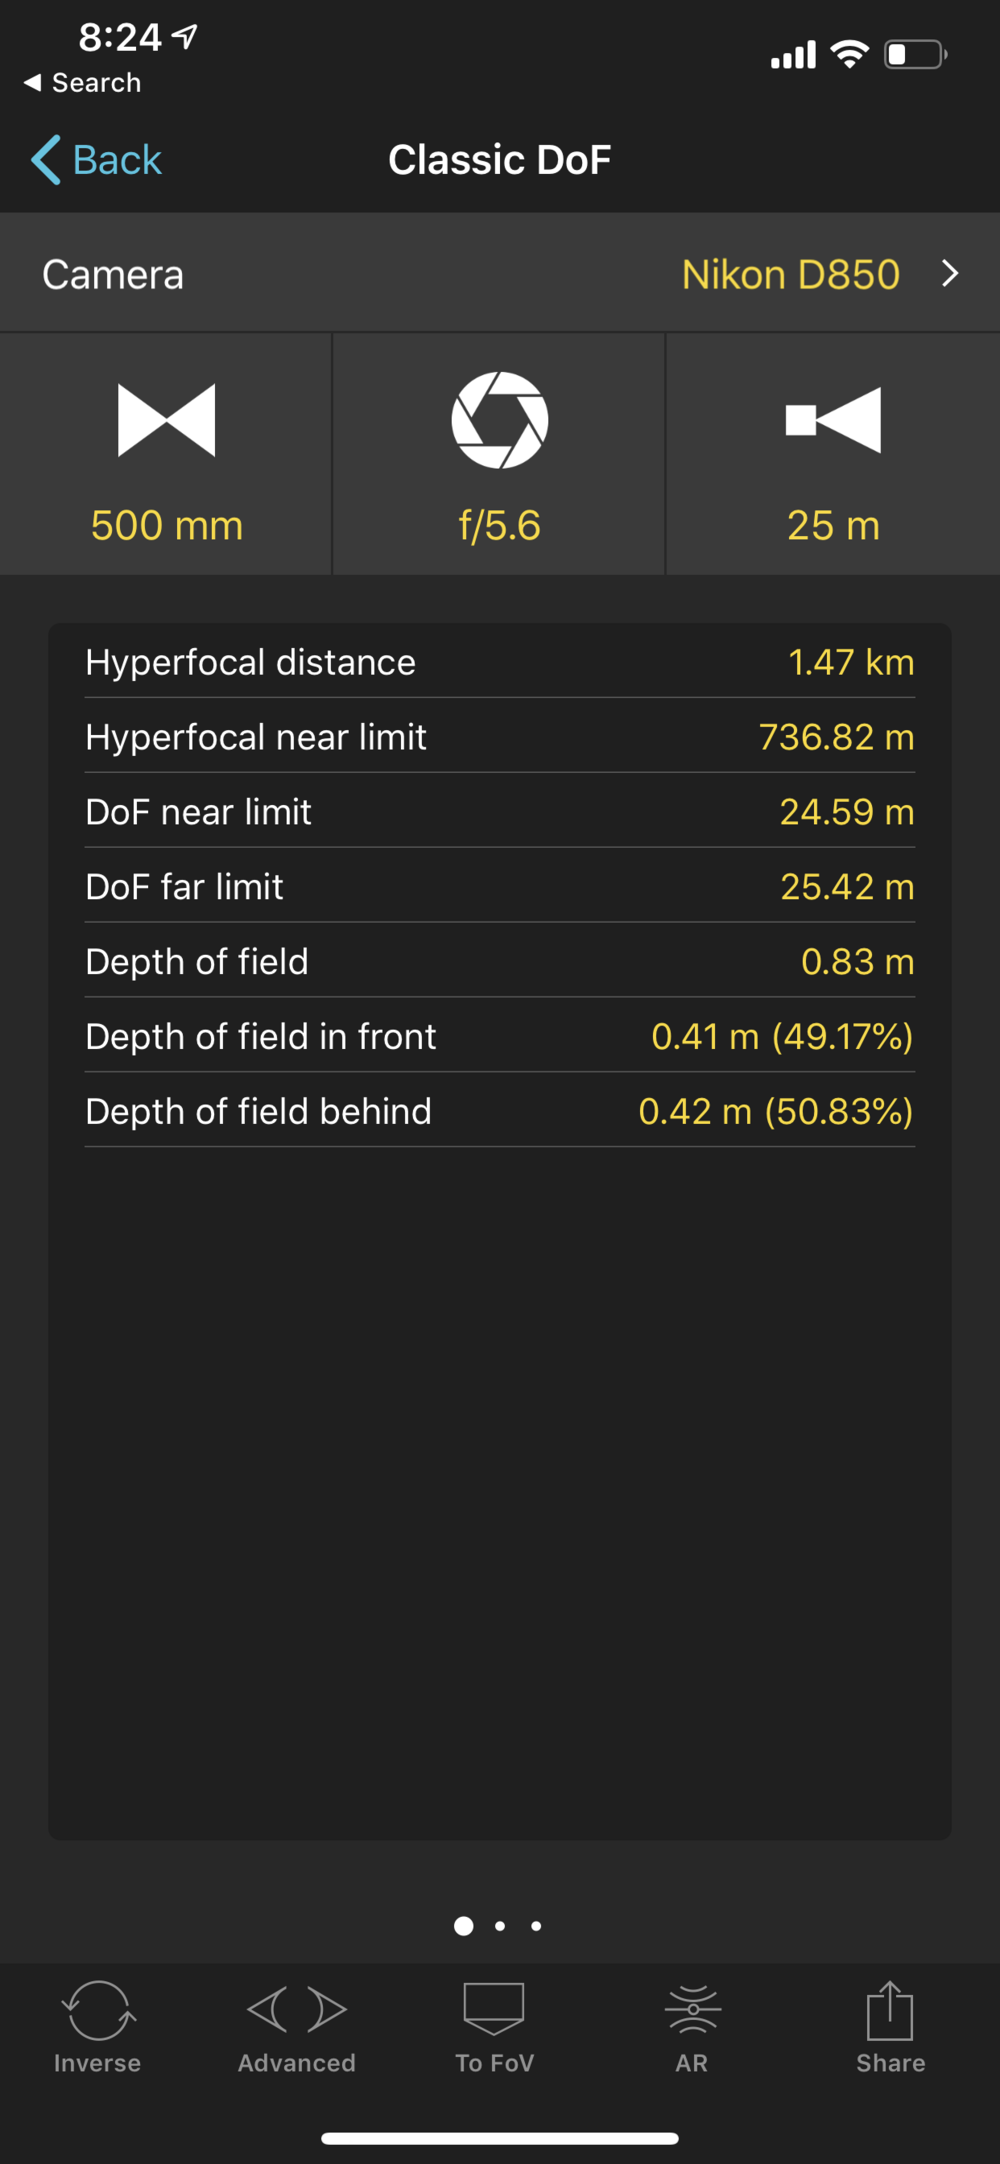 PhotoPills depth of field calculator allows you to input camera model, focal length, aperture and subject distance to calculate depth of field